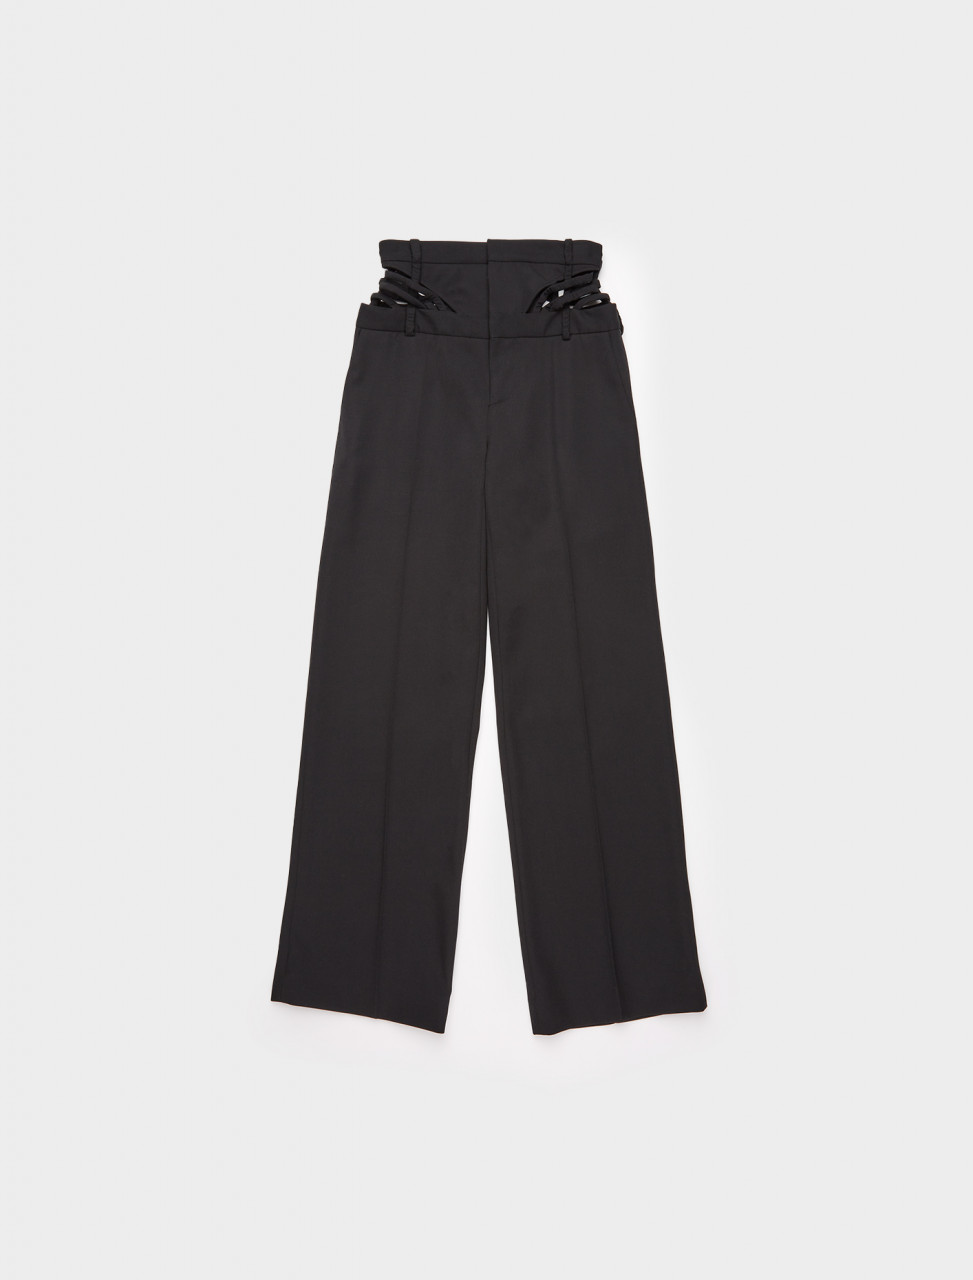 213-WPANT62-S19-F17 Y PROJECT WAIST STRAP TROUSERS BLACK